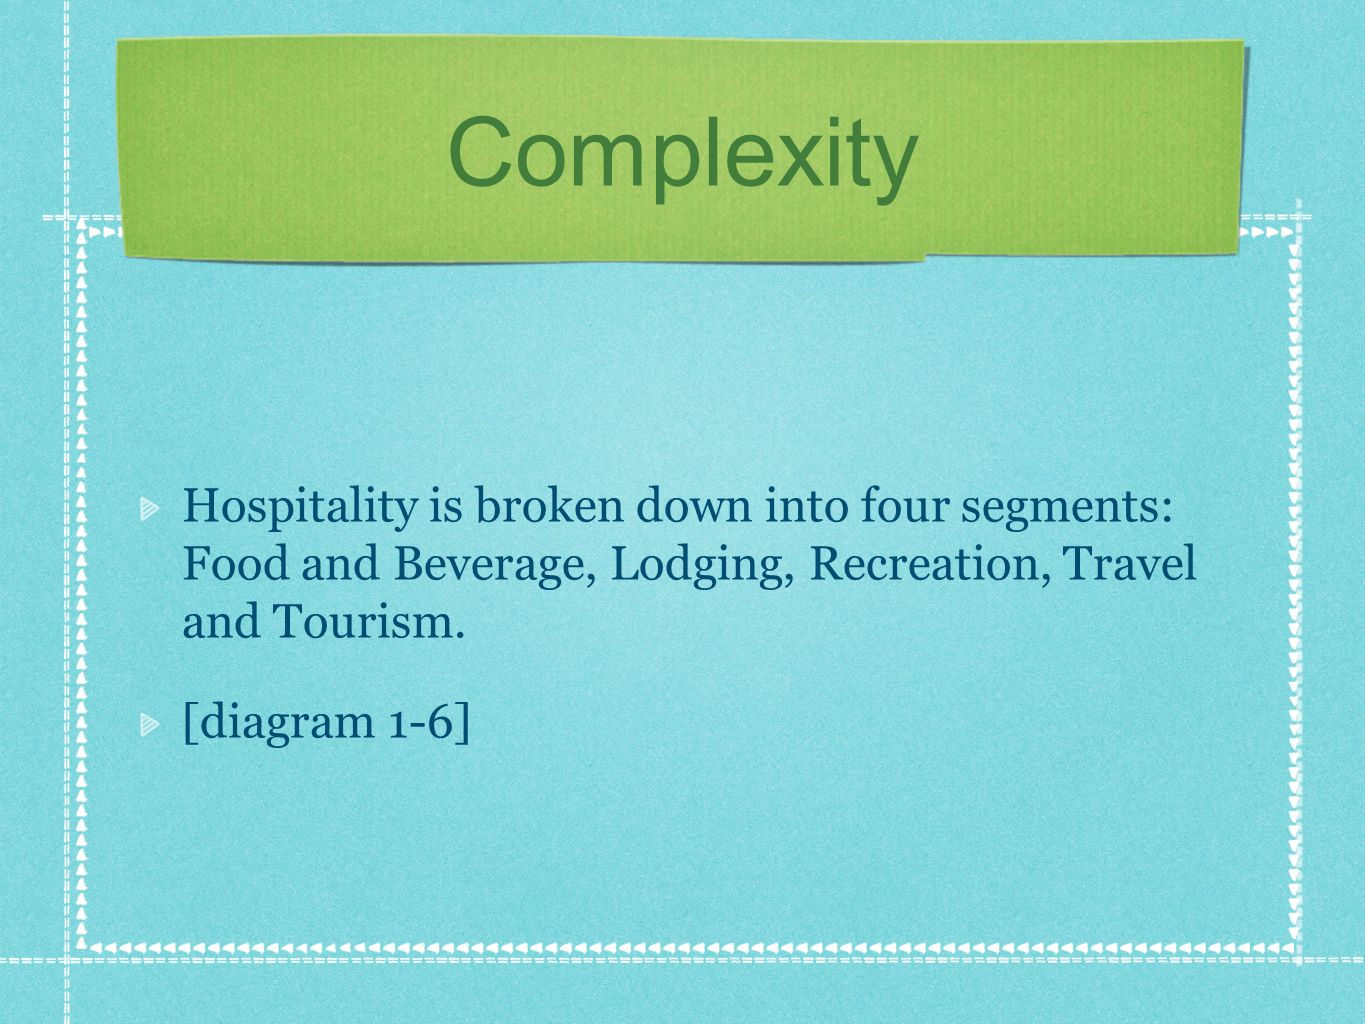 Complexity Hospitality is broken down into four segments: Food and Beverage, Lodging, Recreation, Travel and Tourism.